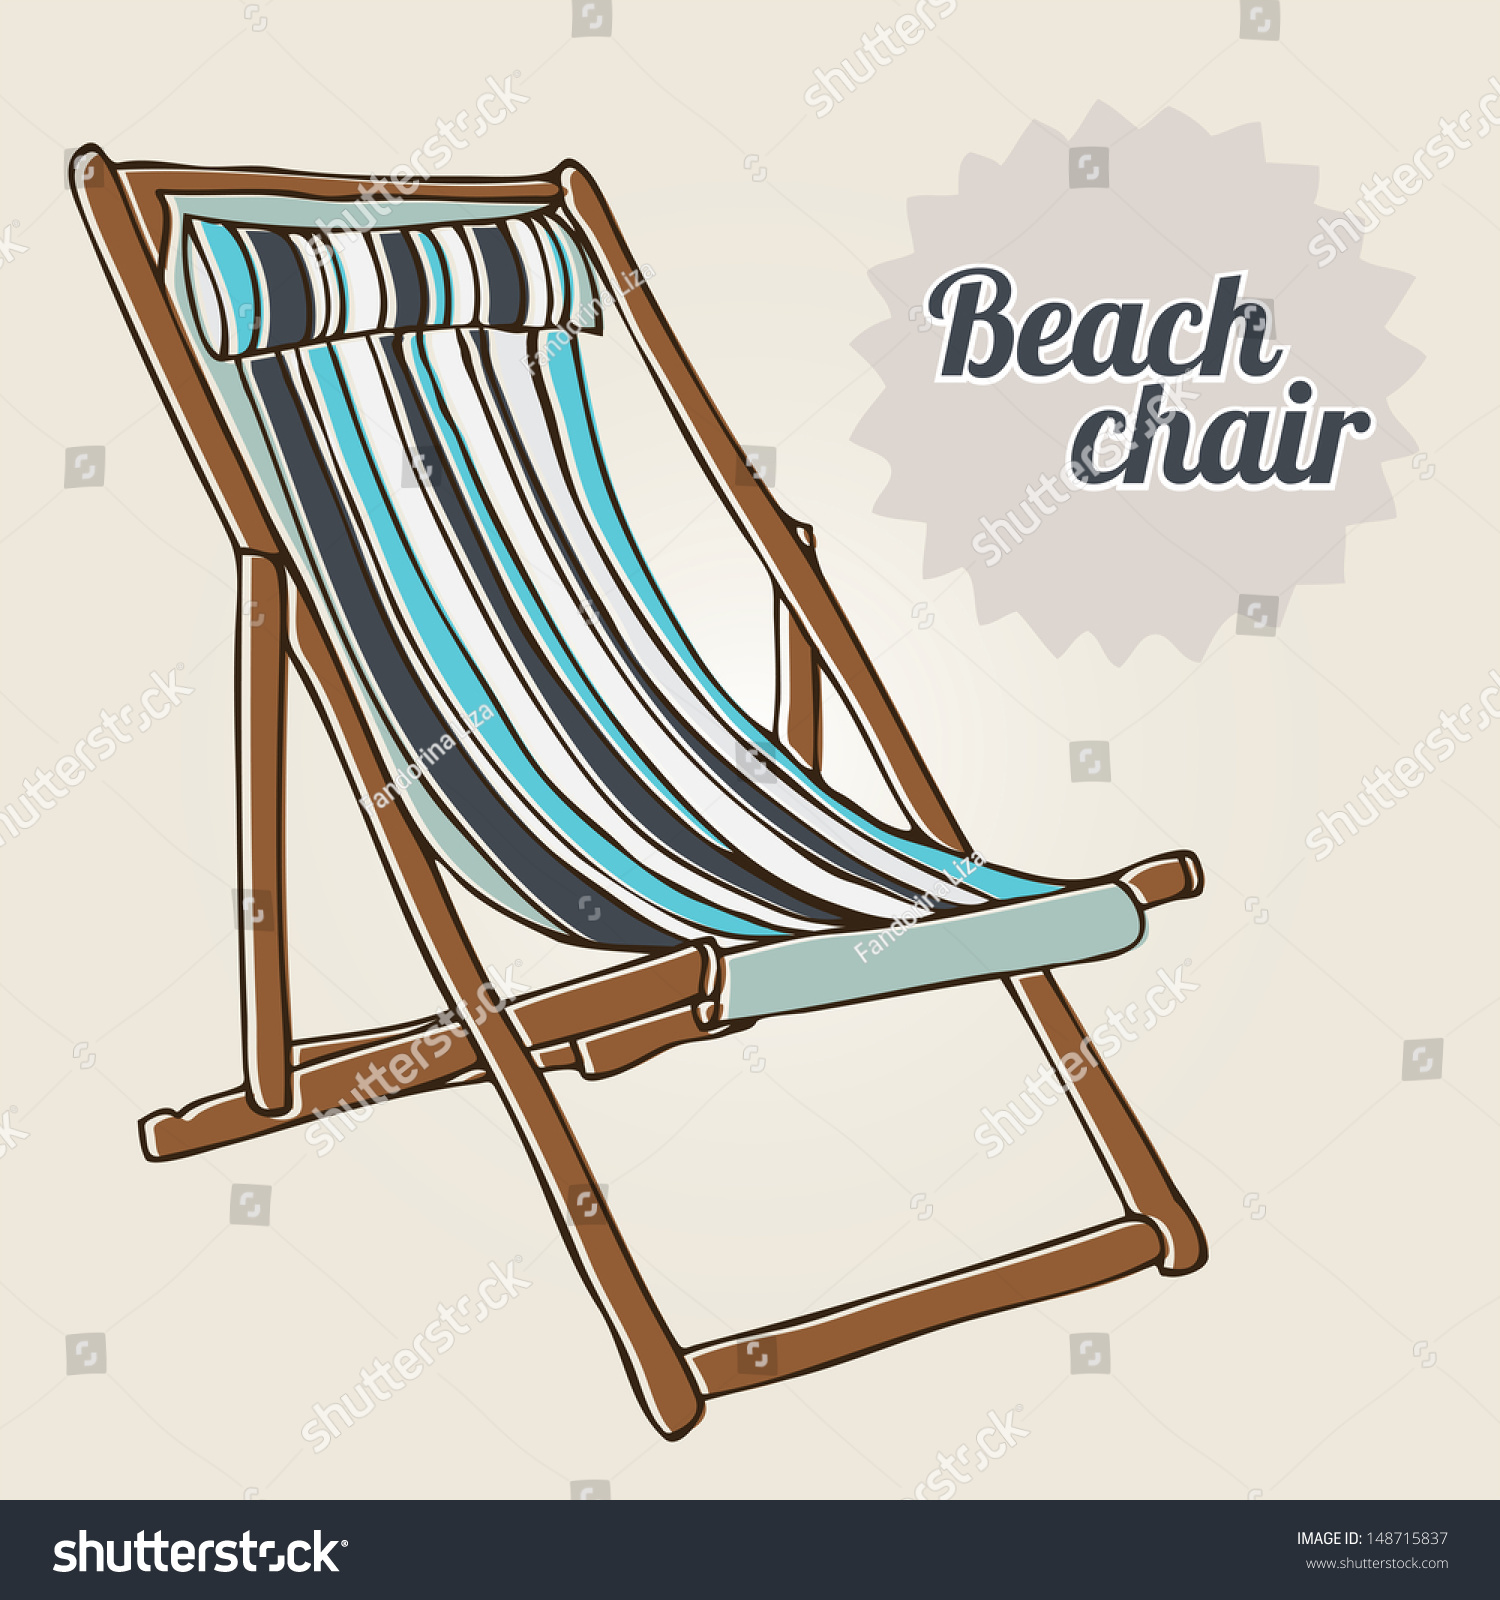 Travel Background Handdrawn Beach Chair Stock Vector